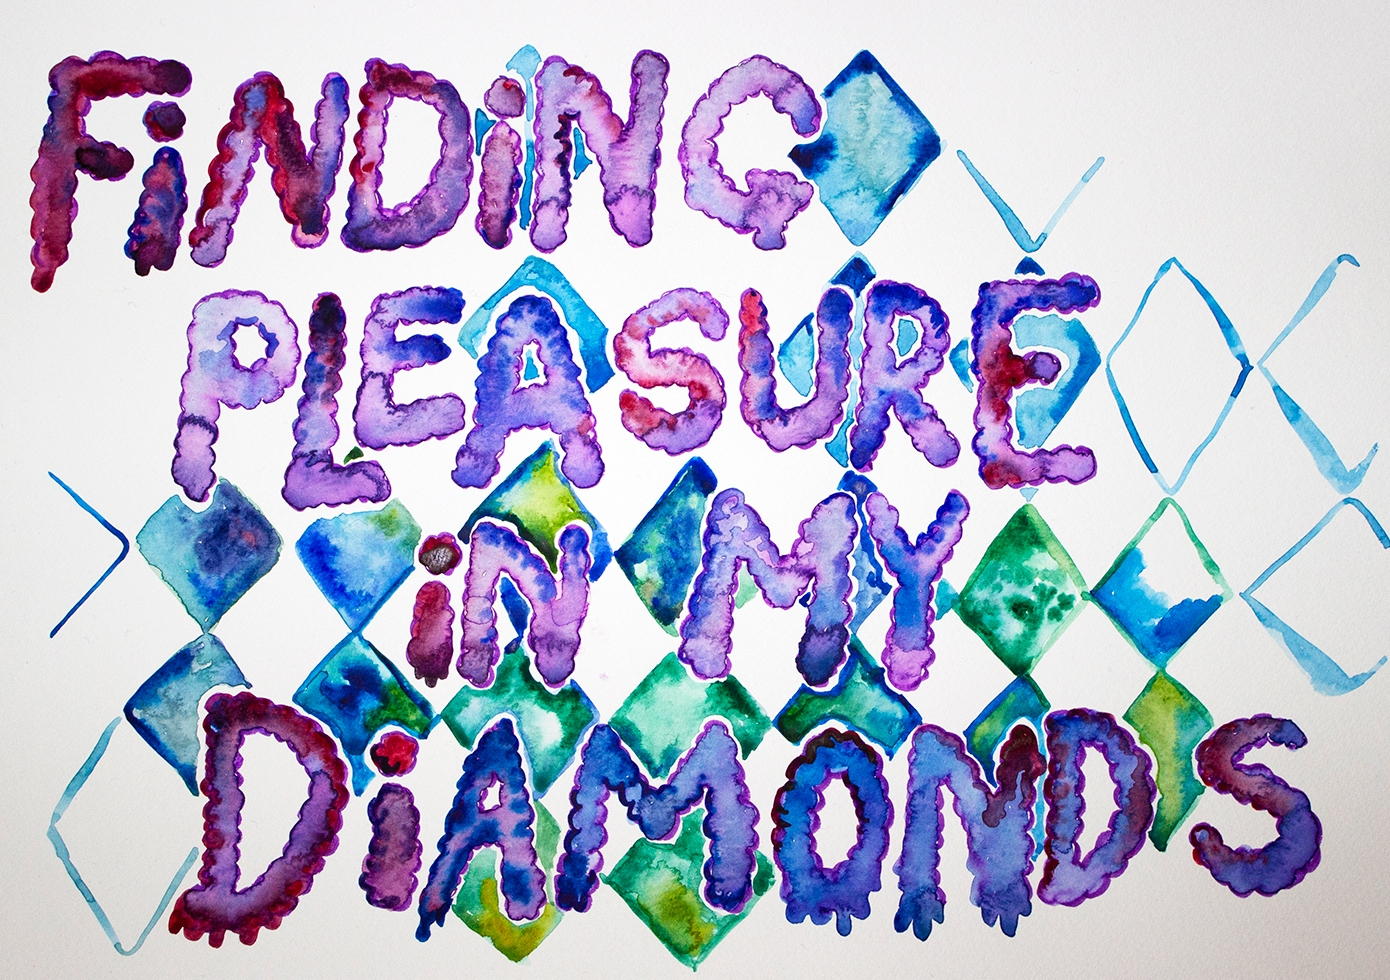 Conjuring rest for a new infrastructure – finding pleasure in my diamonds (watercolour series, 2021)